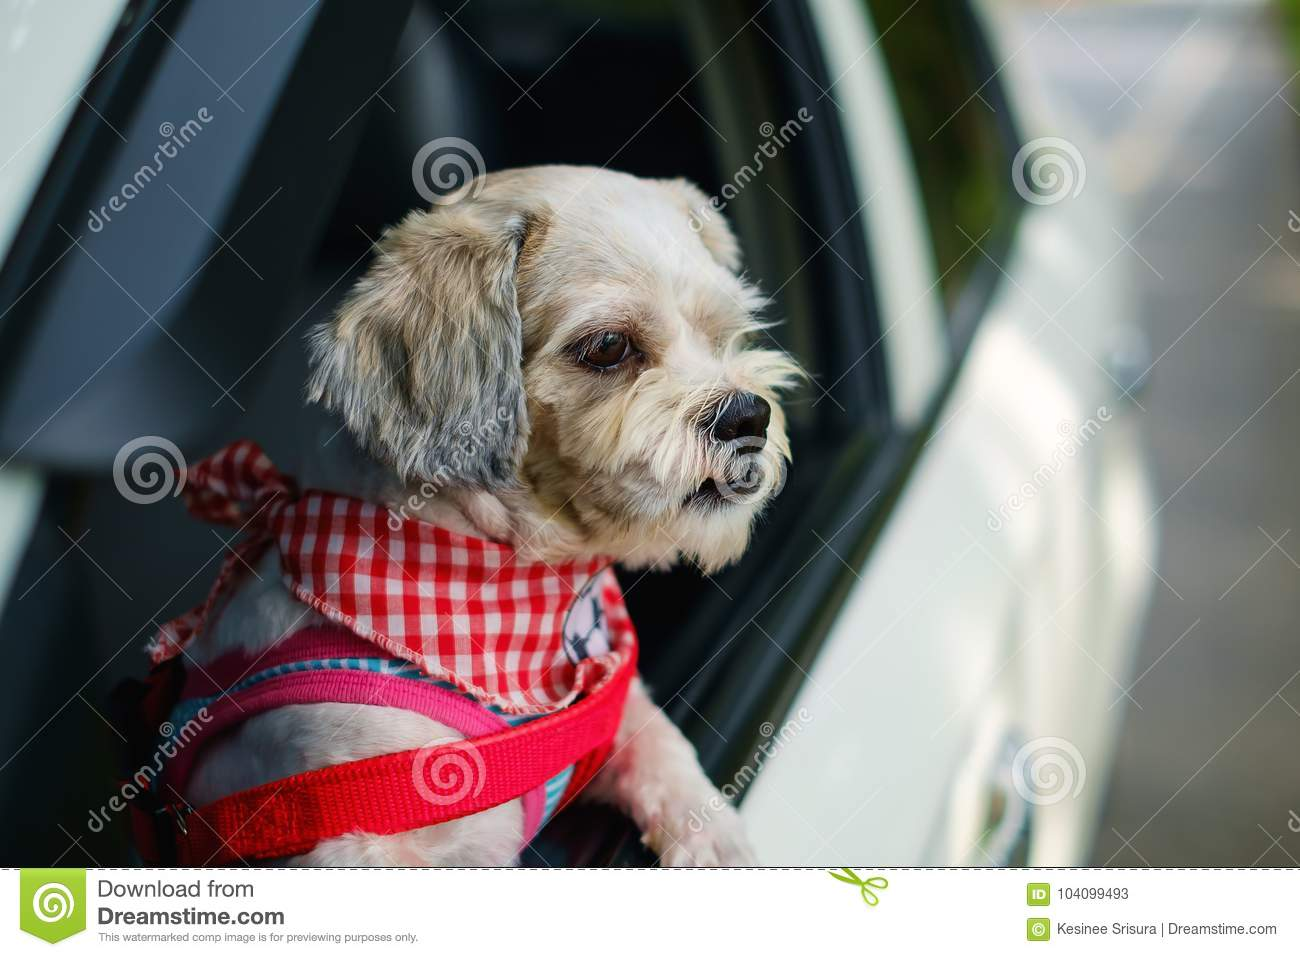 White Short Hair Shih Tzu Dog With Cutely Clothes Looking Out Of The